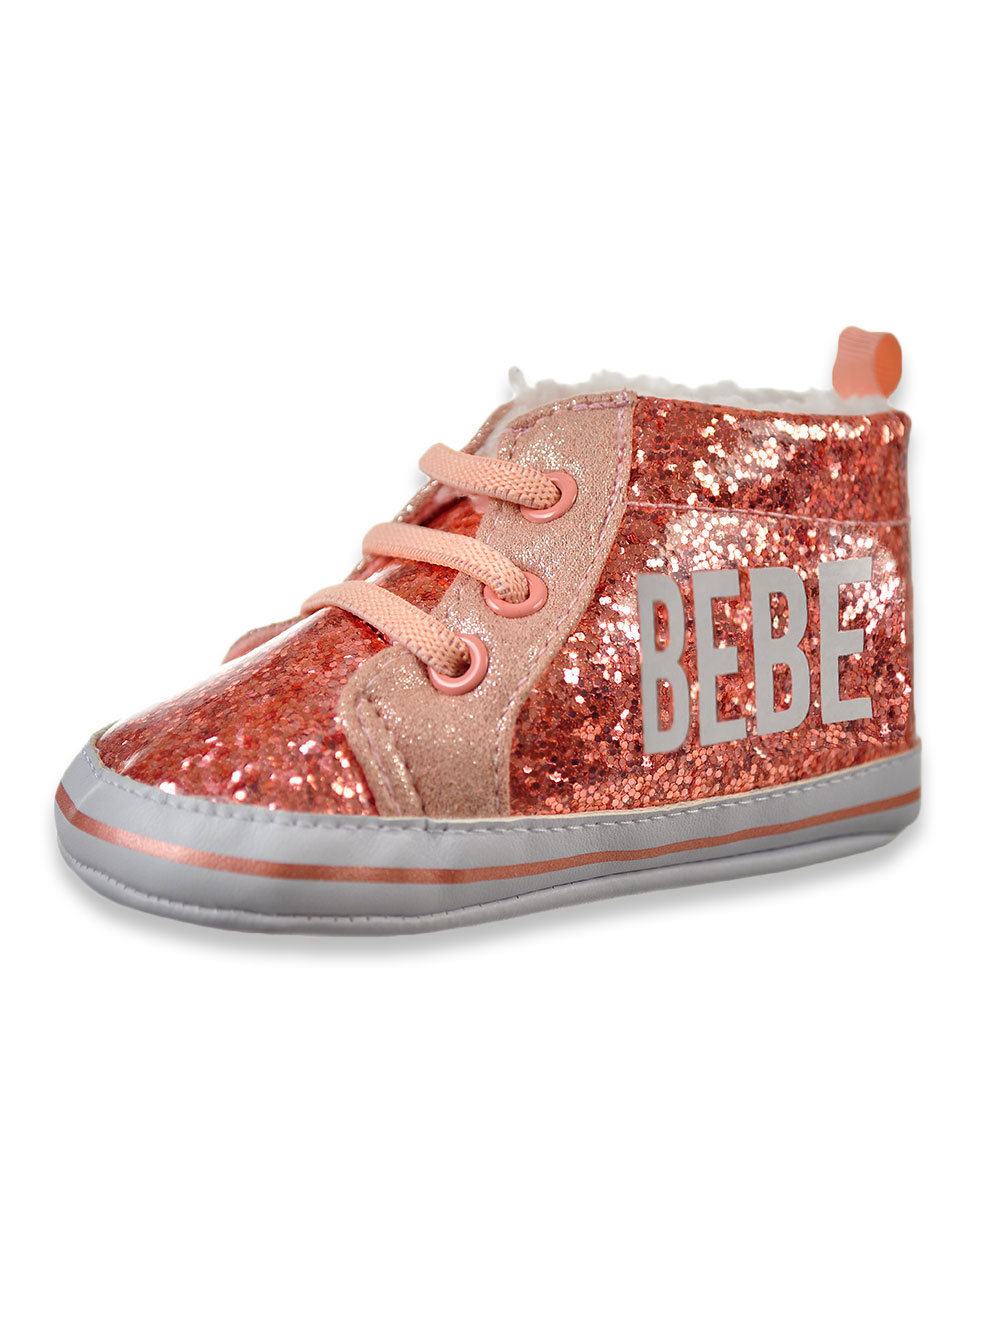 Bebe Sneakers and Booties